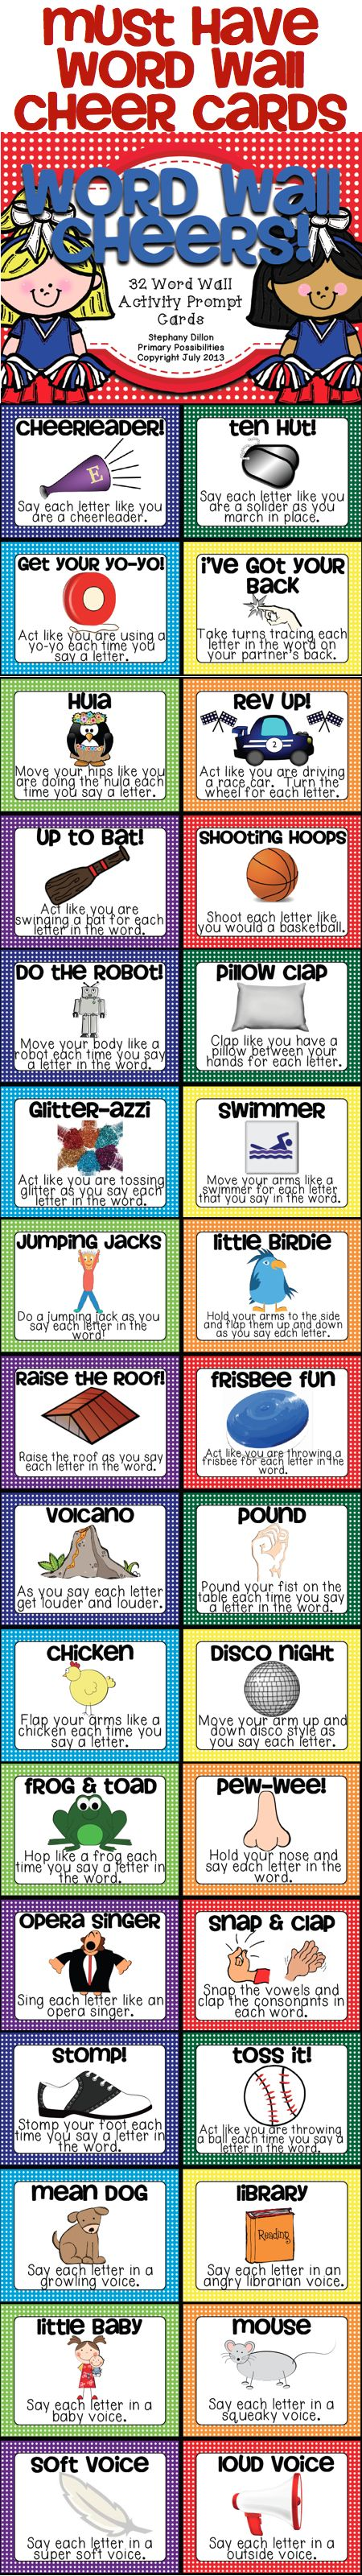 Must have Cheer Cards for your Word Wall...  Use to get your students motivated to learn the sight words! (Ideas for cheer box)